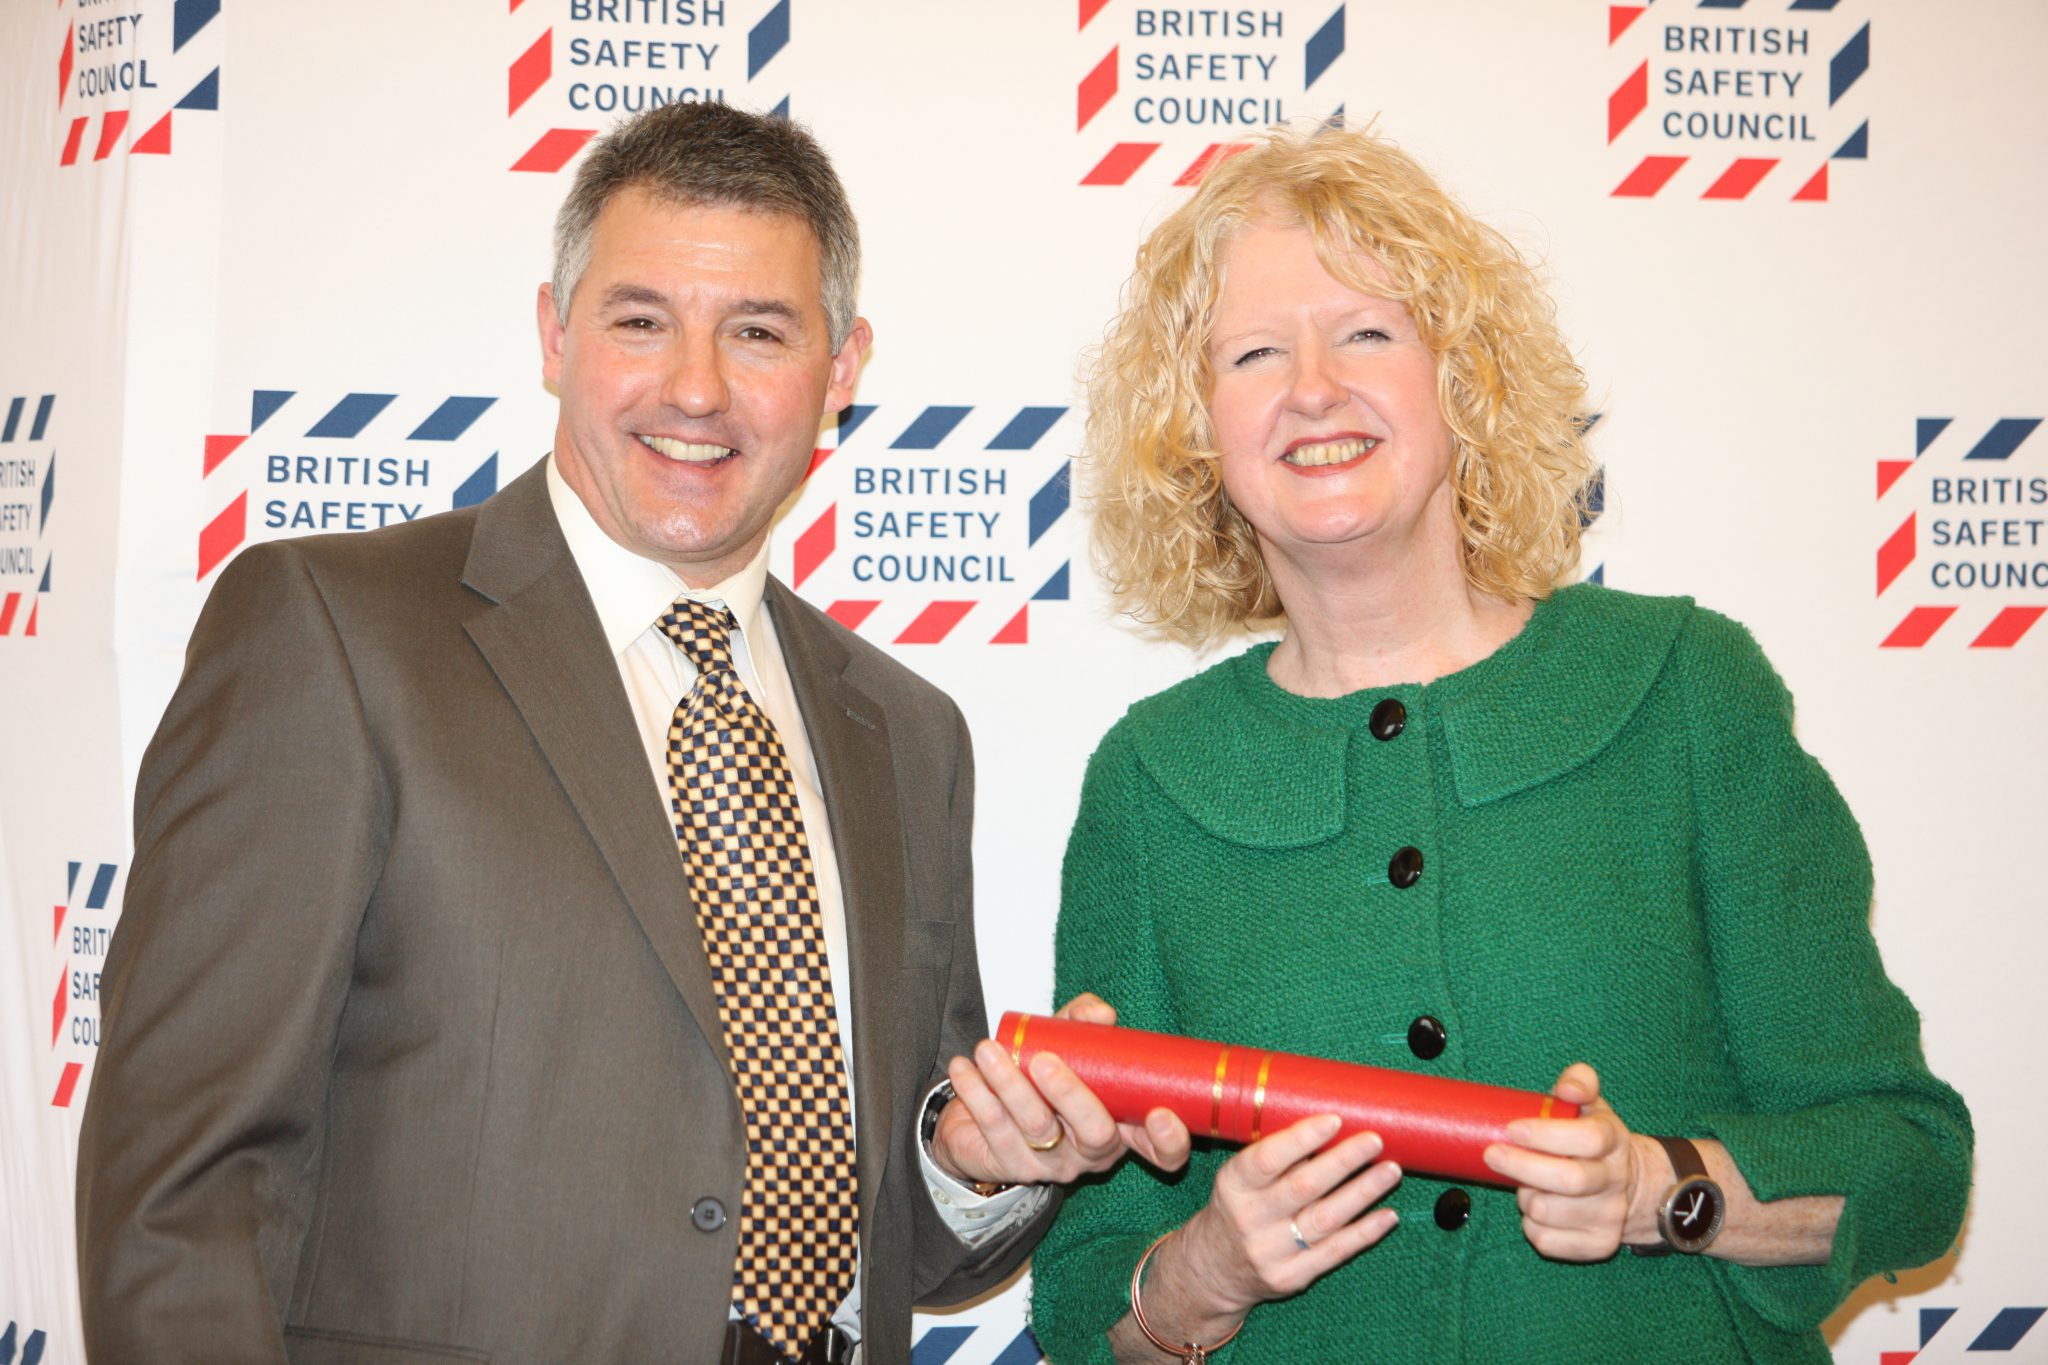 Celebrating a Five Star Grading in the British Safety Council's Five Star Occupational Health and Safety Audit